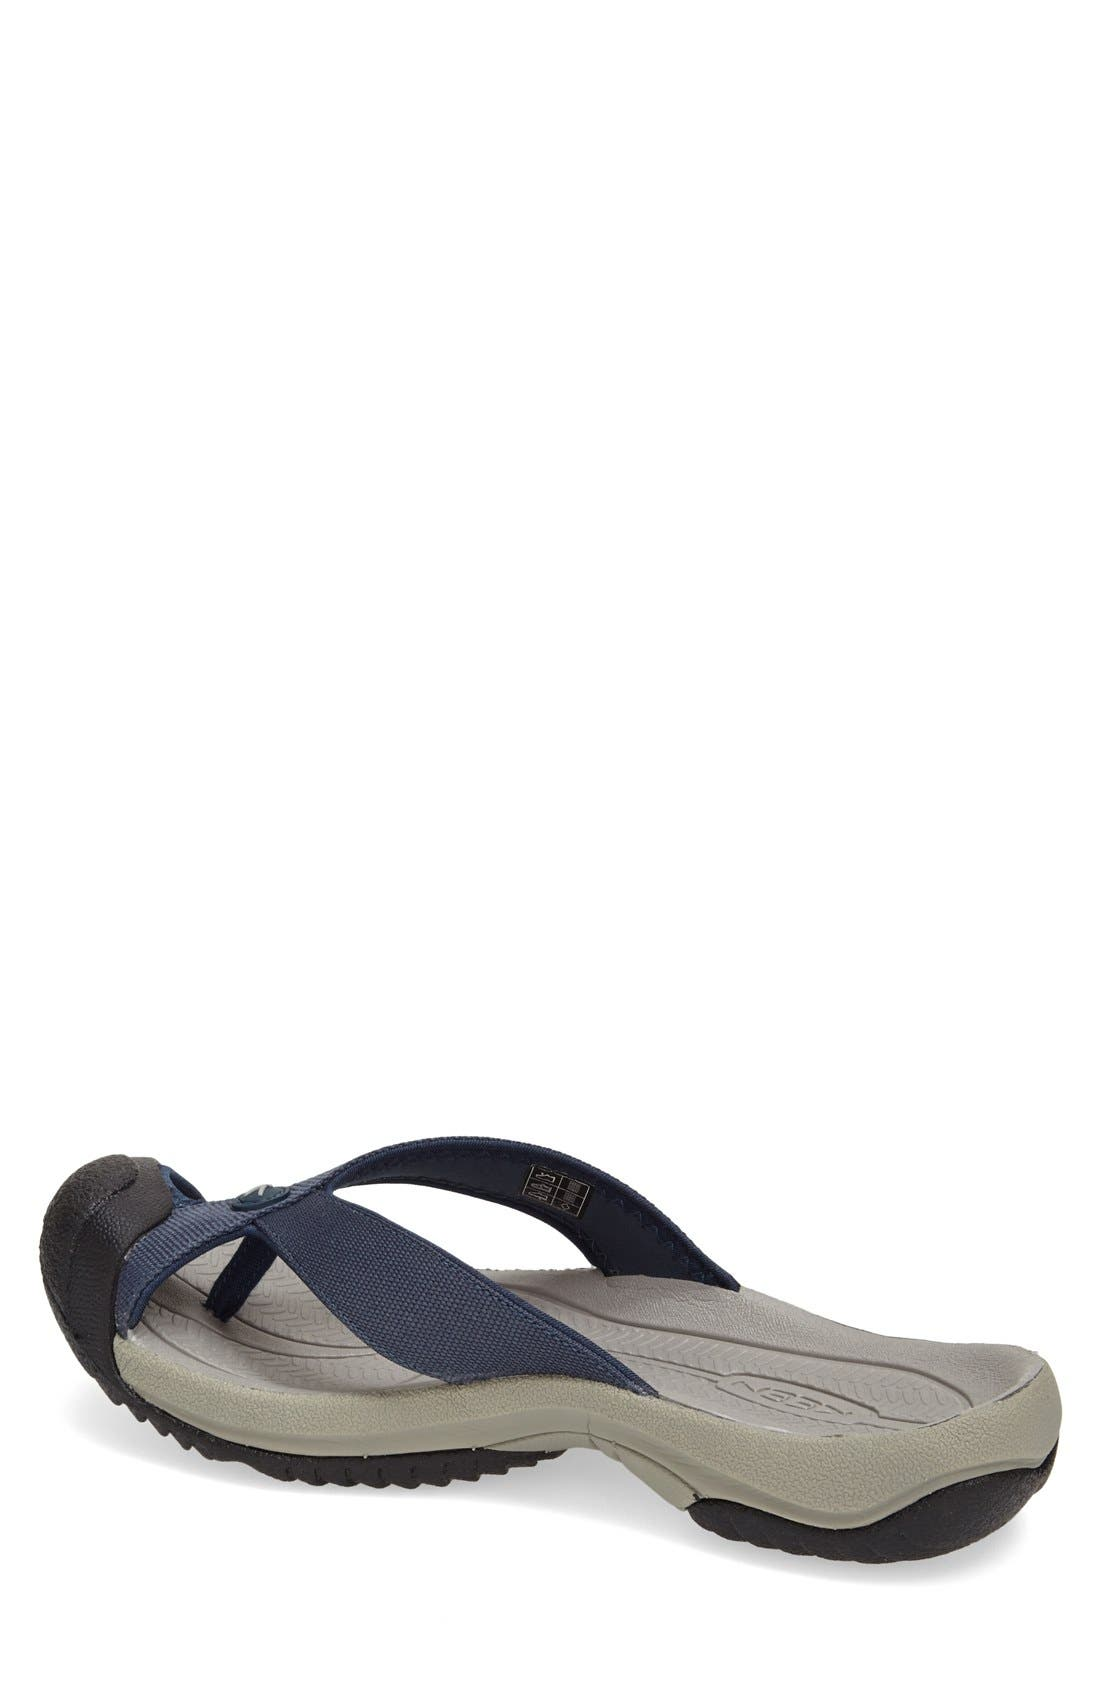 'Waimea H2' Water Thong Sandal,                             Alternate thumbnail 2, color,                             Midnight Navy/ Neutral